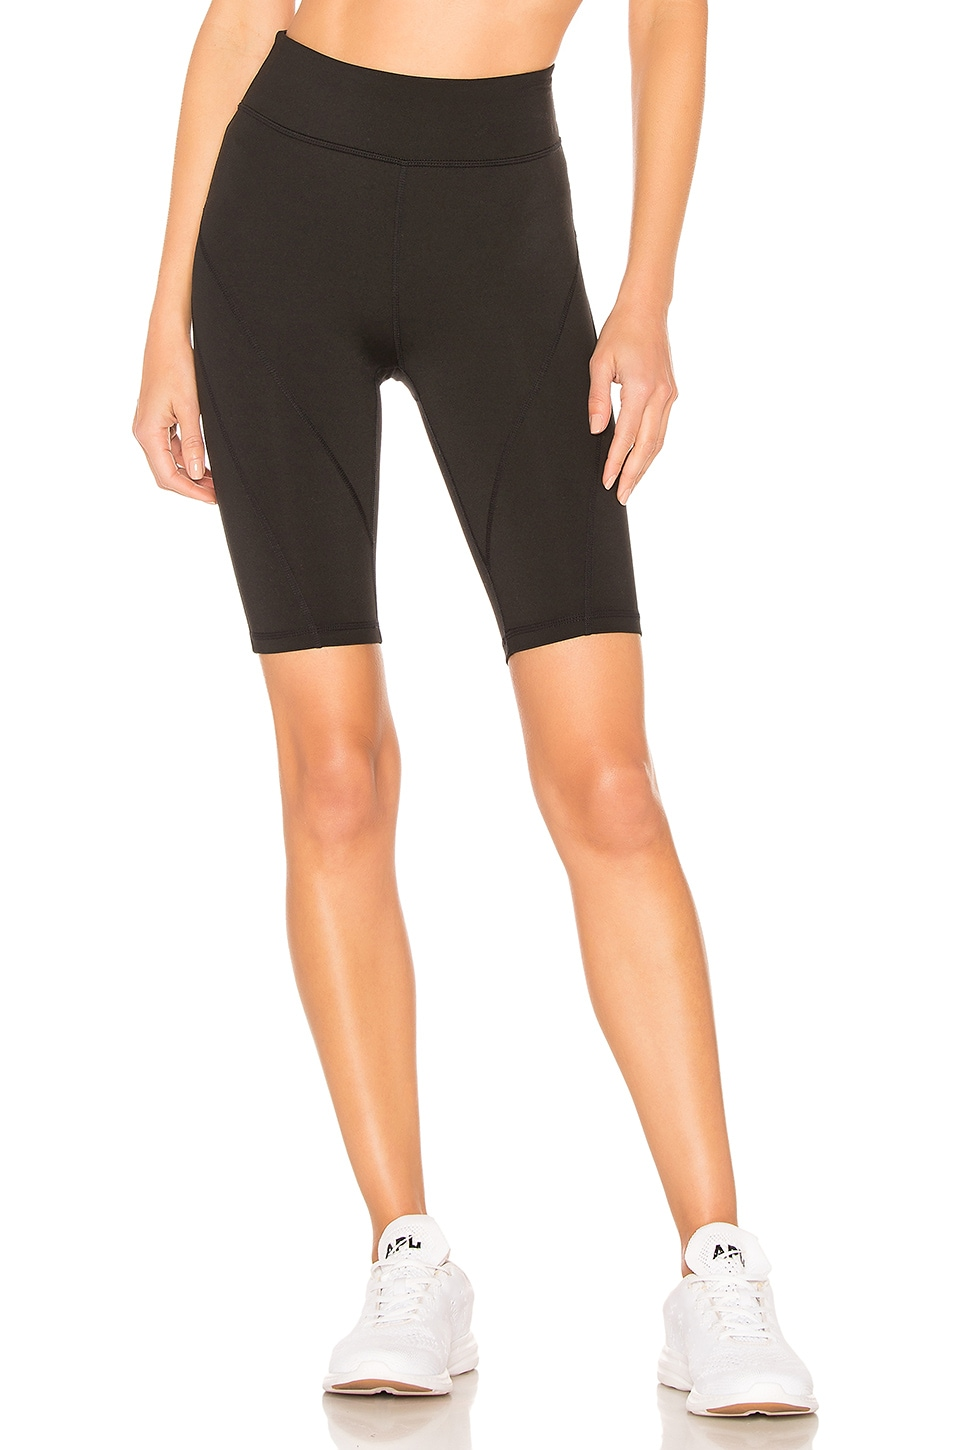 Free People X FP Movement Biker Baby Short in Black